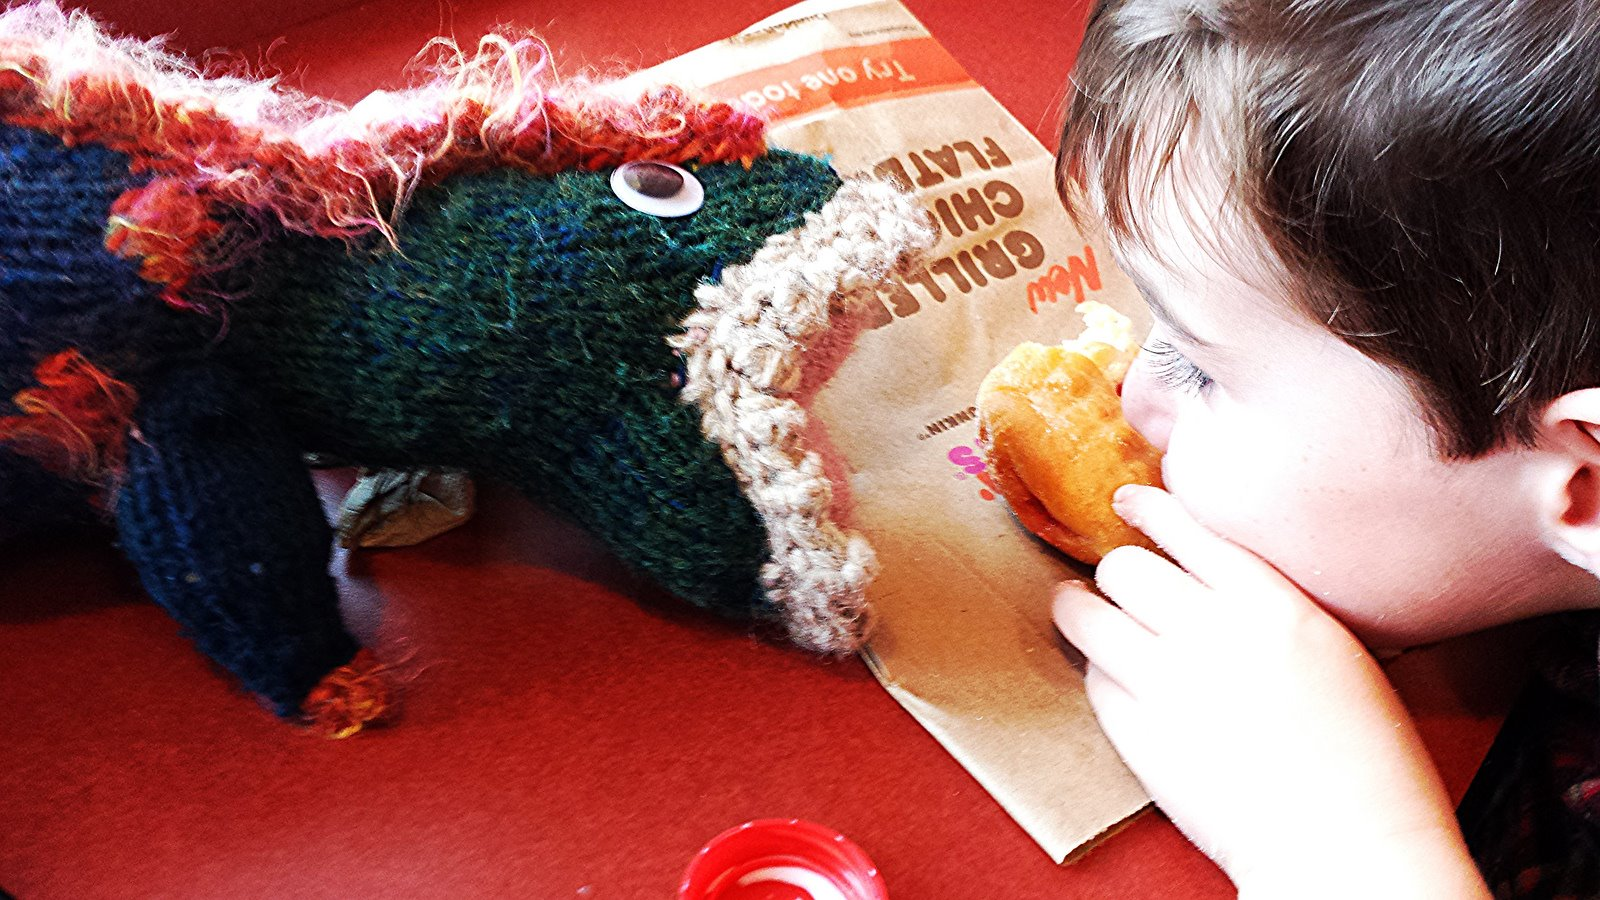 The boy and his toy T-rex eat a doughnut